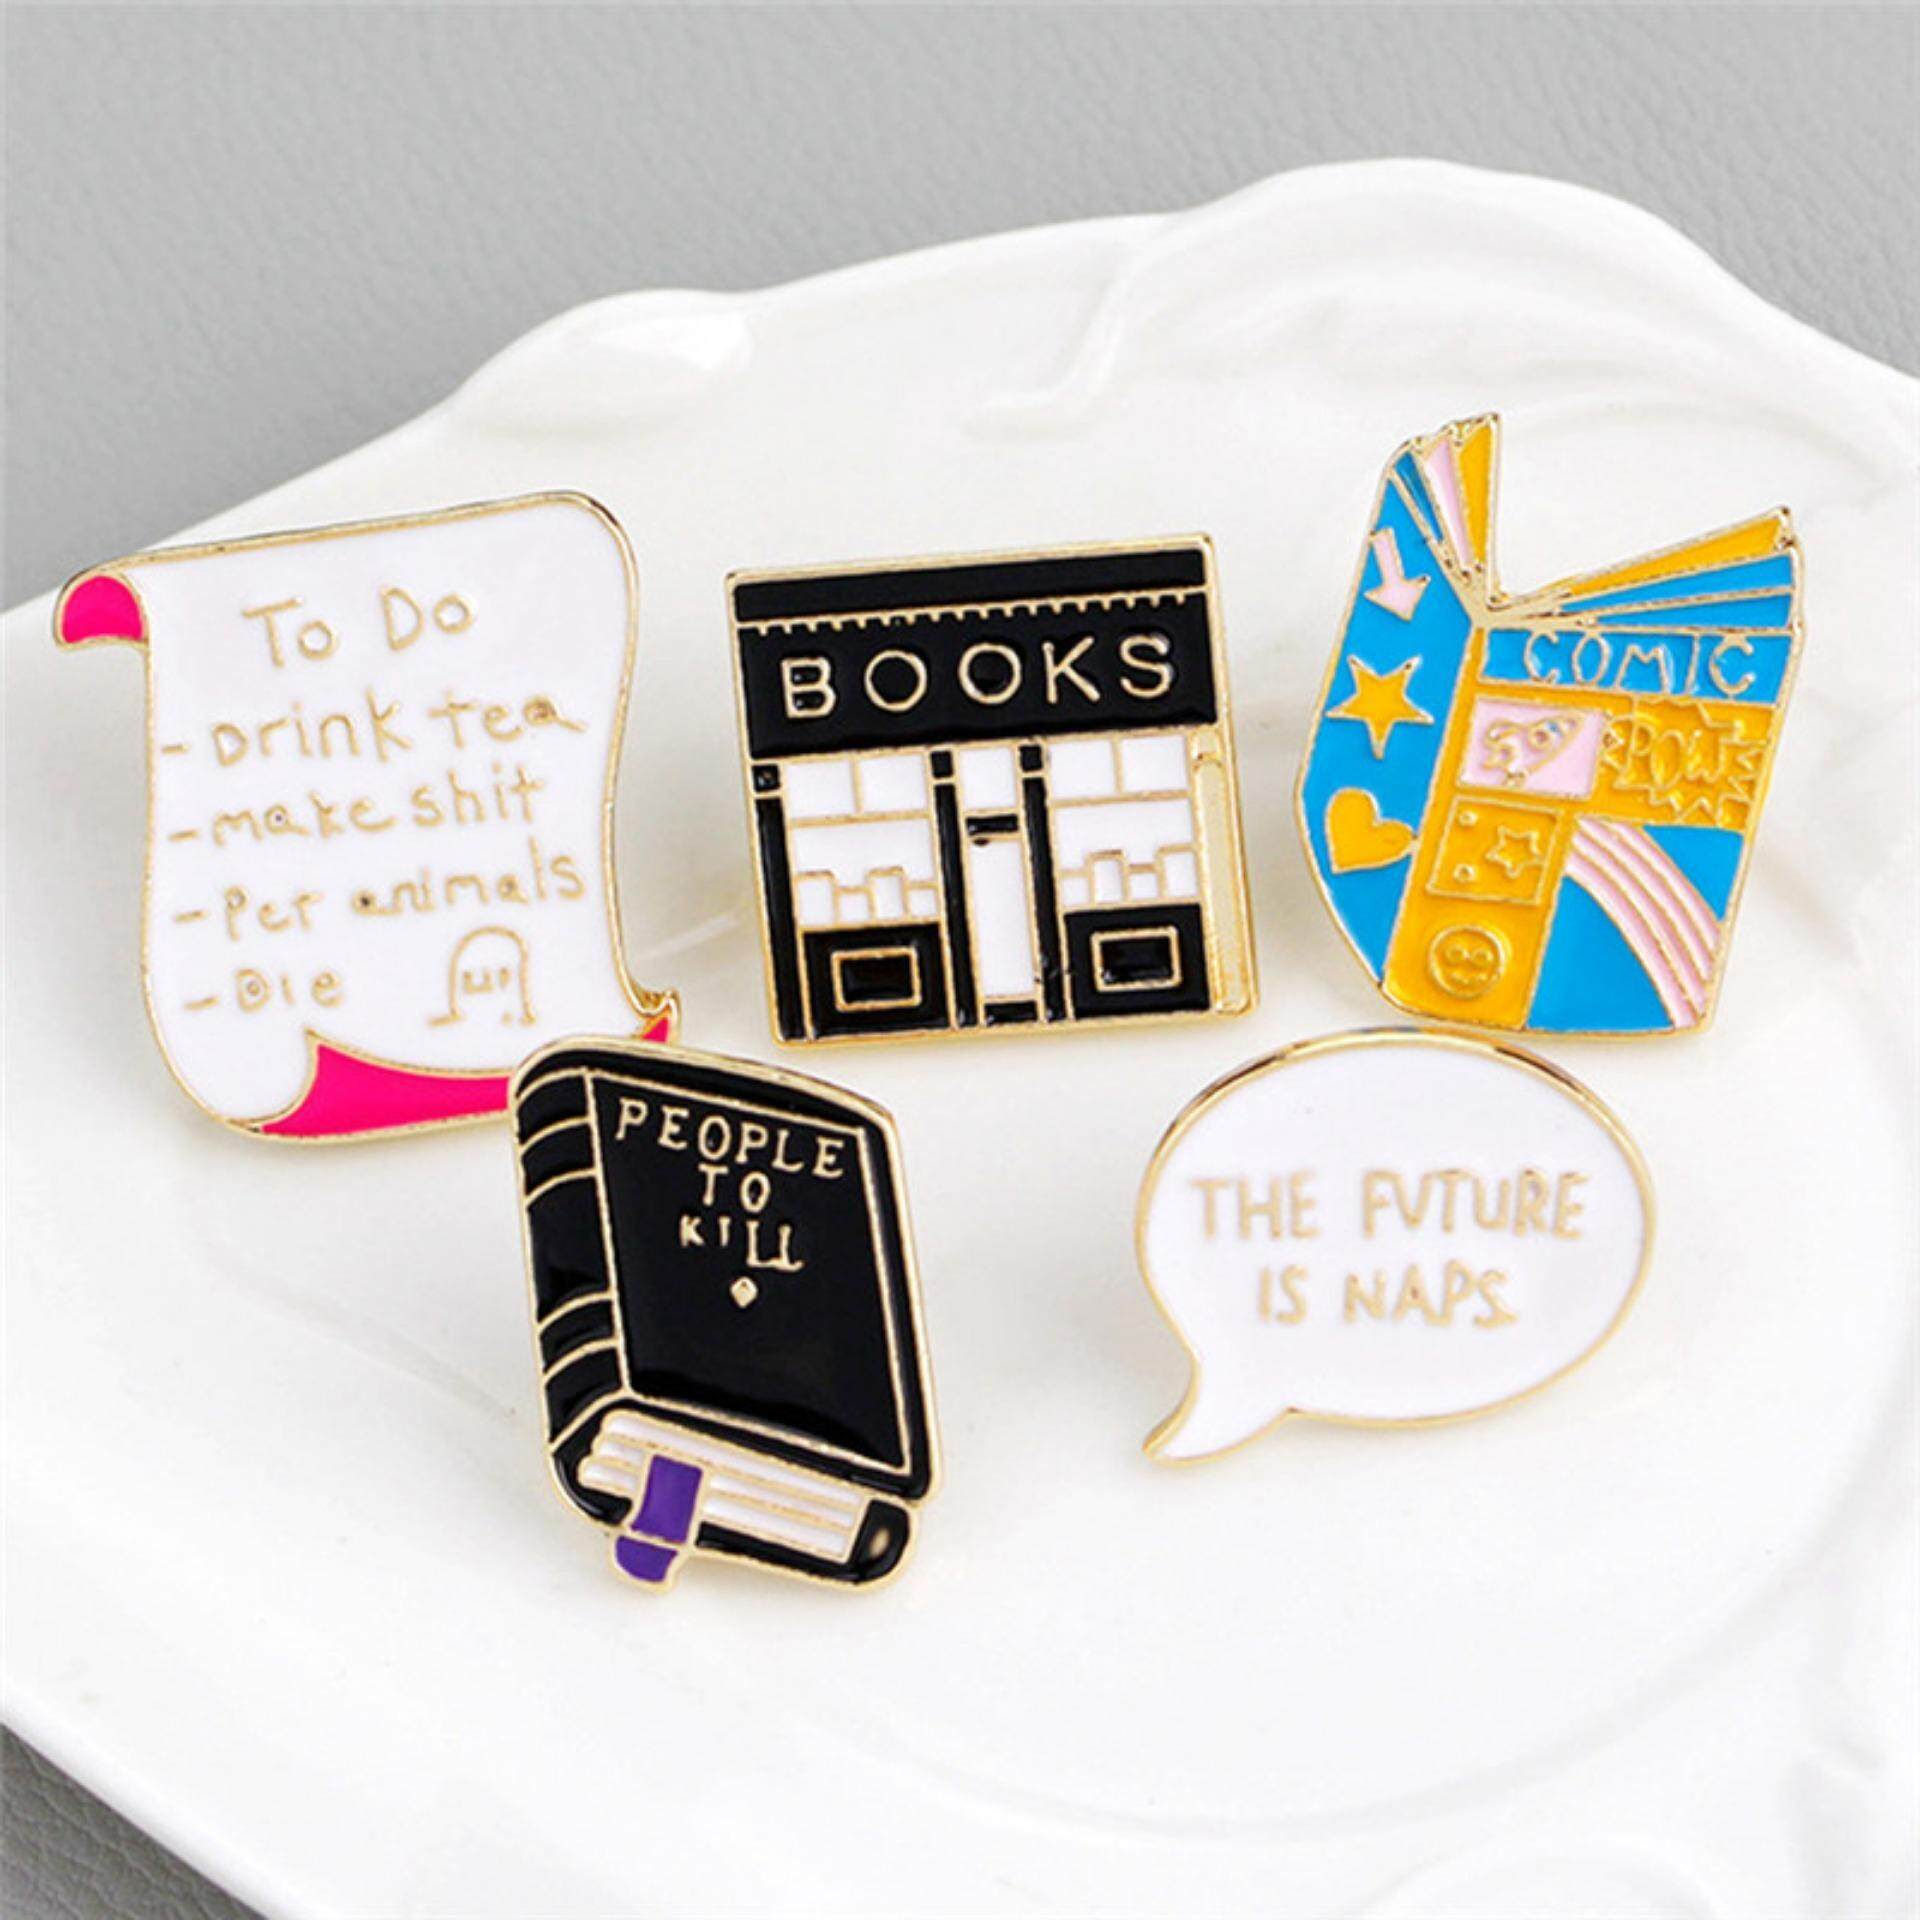 Apparel Sewing & Fabric Cartoon Book Brooch Badges Read Lapel Pins Funny Jewelry Book Brooches Backpack Bag Accessories Special Buy